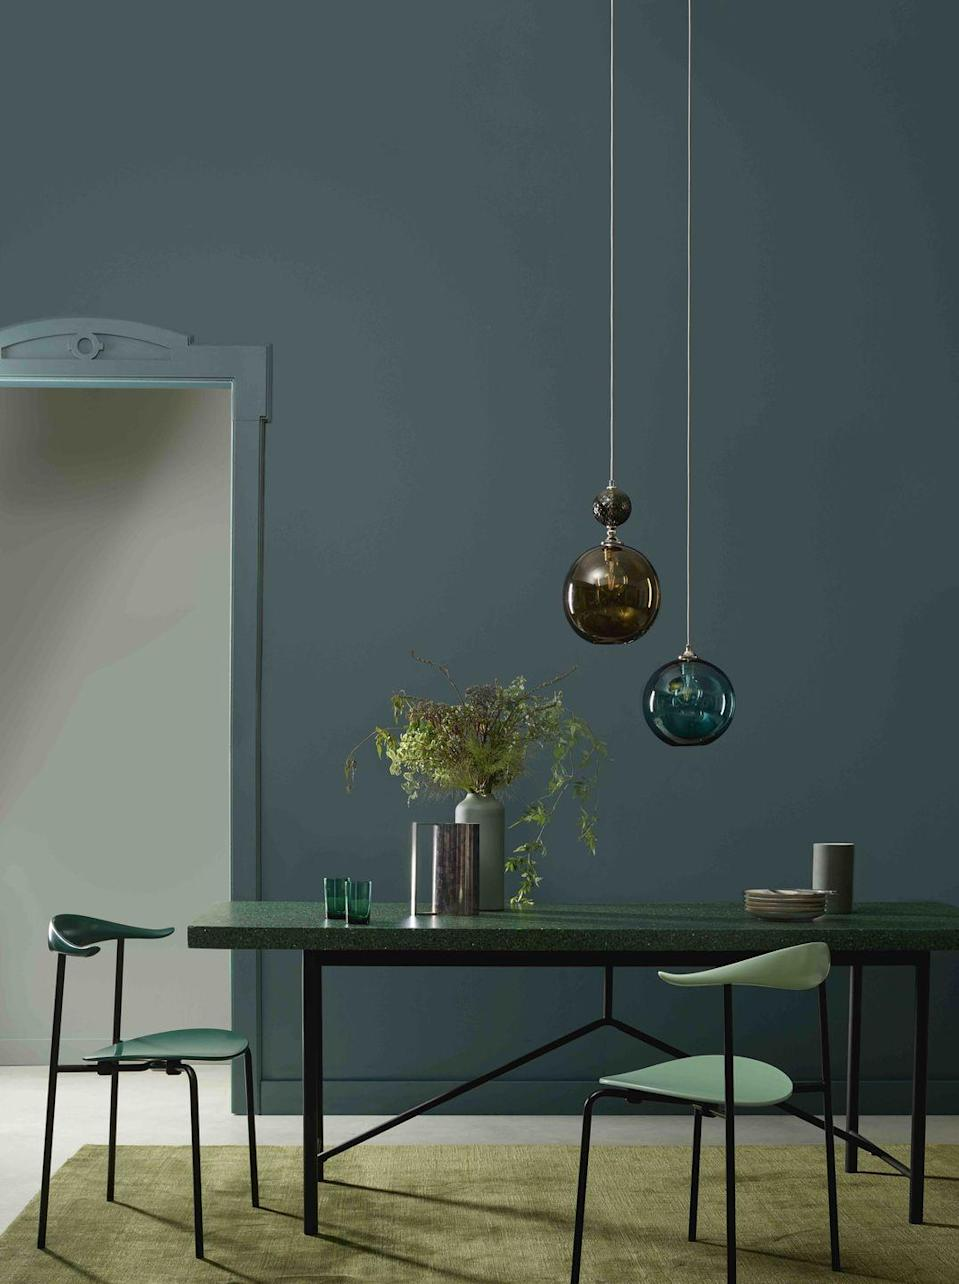 "<p>Follow a strict colour palette for a elegant dining space by linking your painted walls to your furniture and accessories. Here '<a href=""https://www.crownpaints.co.uk/products/elle-decoration-by-crown/botanical---flat-matt/botanical-noir-no.-374/18073"" rel=""nofollow noopener"" target=""_blank"" data-ylk=""slk:Botanical Noir"" class=""link rapid-noclick-resp"">Botanical Noir</a>' is used on the walls and '<a href=""https://www.crownpaints.co.uk/products/elle-decoration-by-crown/botanical---flat-matt/trailing-plant-no.-323/18070"" rel=""nofollow noopener"" target=""_blank"" data-ylk=""slk:Trailing Plant"" class=""link rapid-noclick-resp"">Trailing Plant</a>' for the woodwork. Coloured glass beautifully casts its shadows on flat matt painted walls, which will be highlighted magically with dimmed lighting and candlelight. </p>"